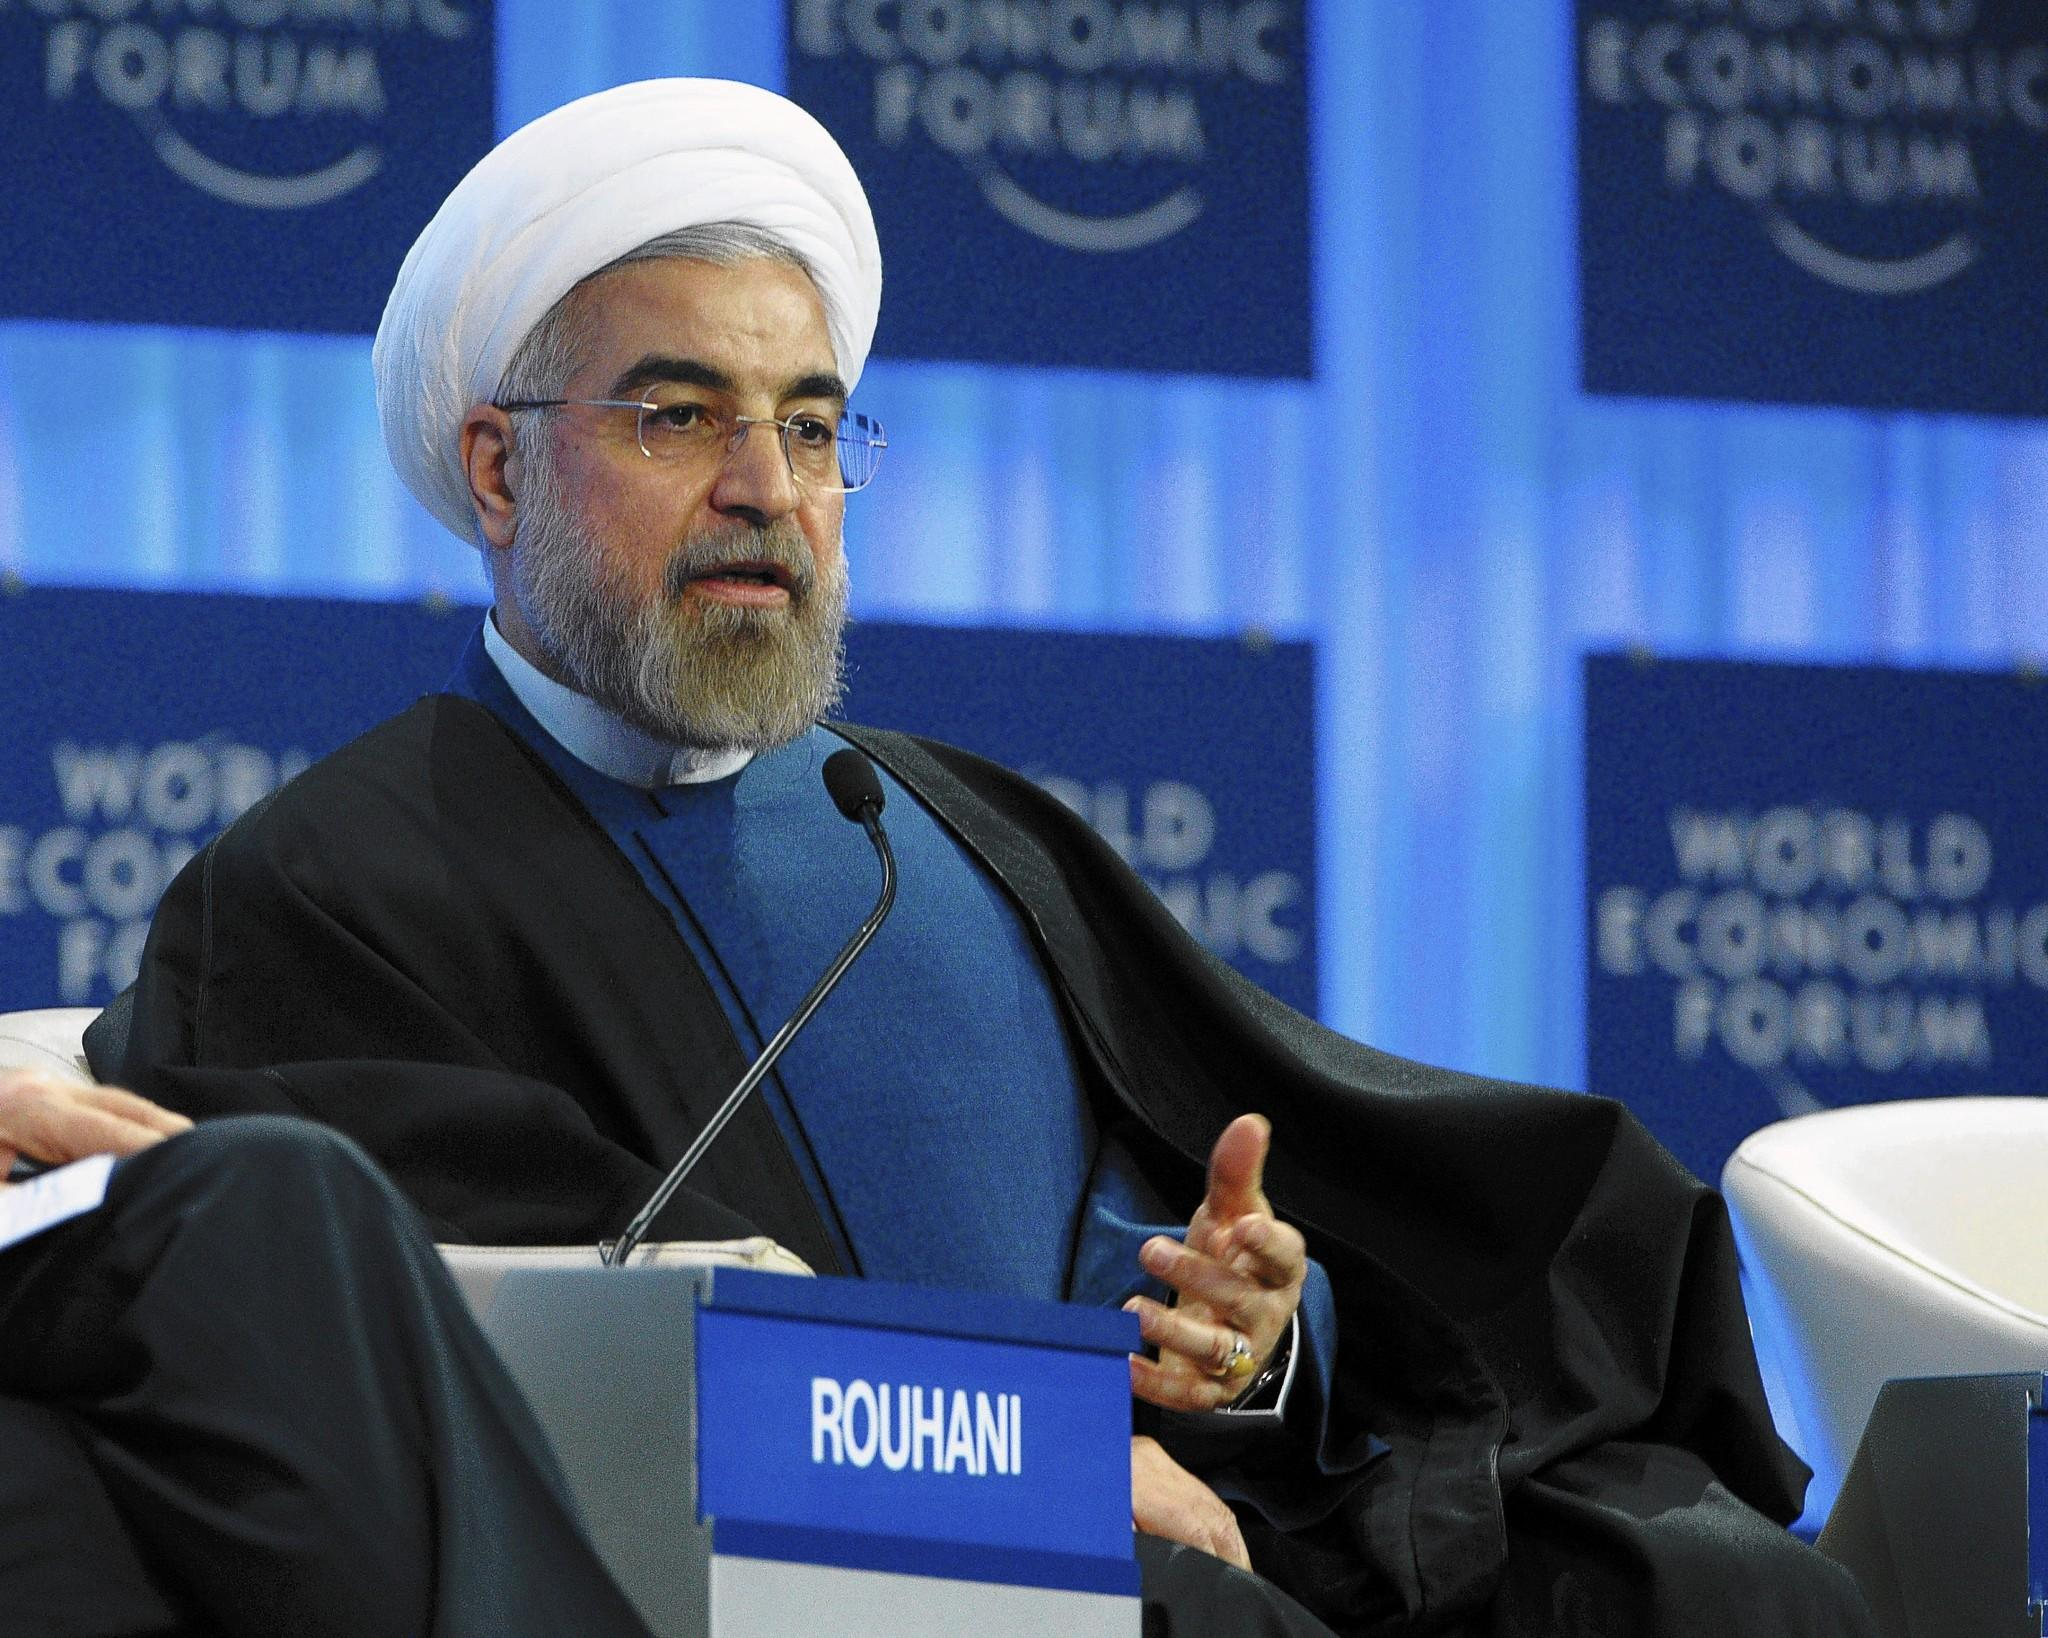 Iranian President Hassan Rouhani addresses the World Economic Forum in Davos on Thursday. (AFP Photo)